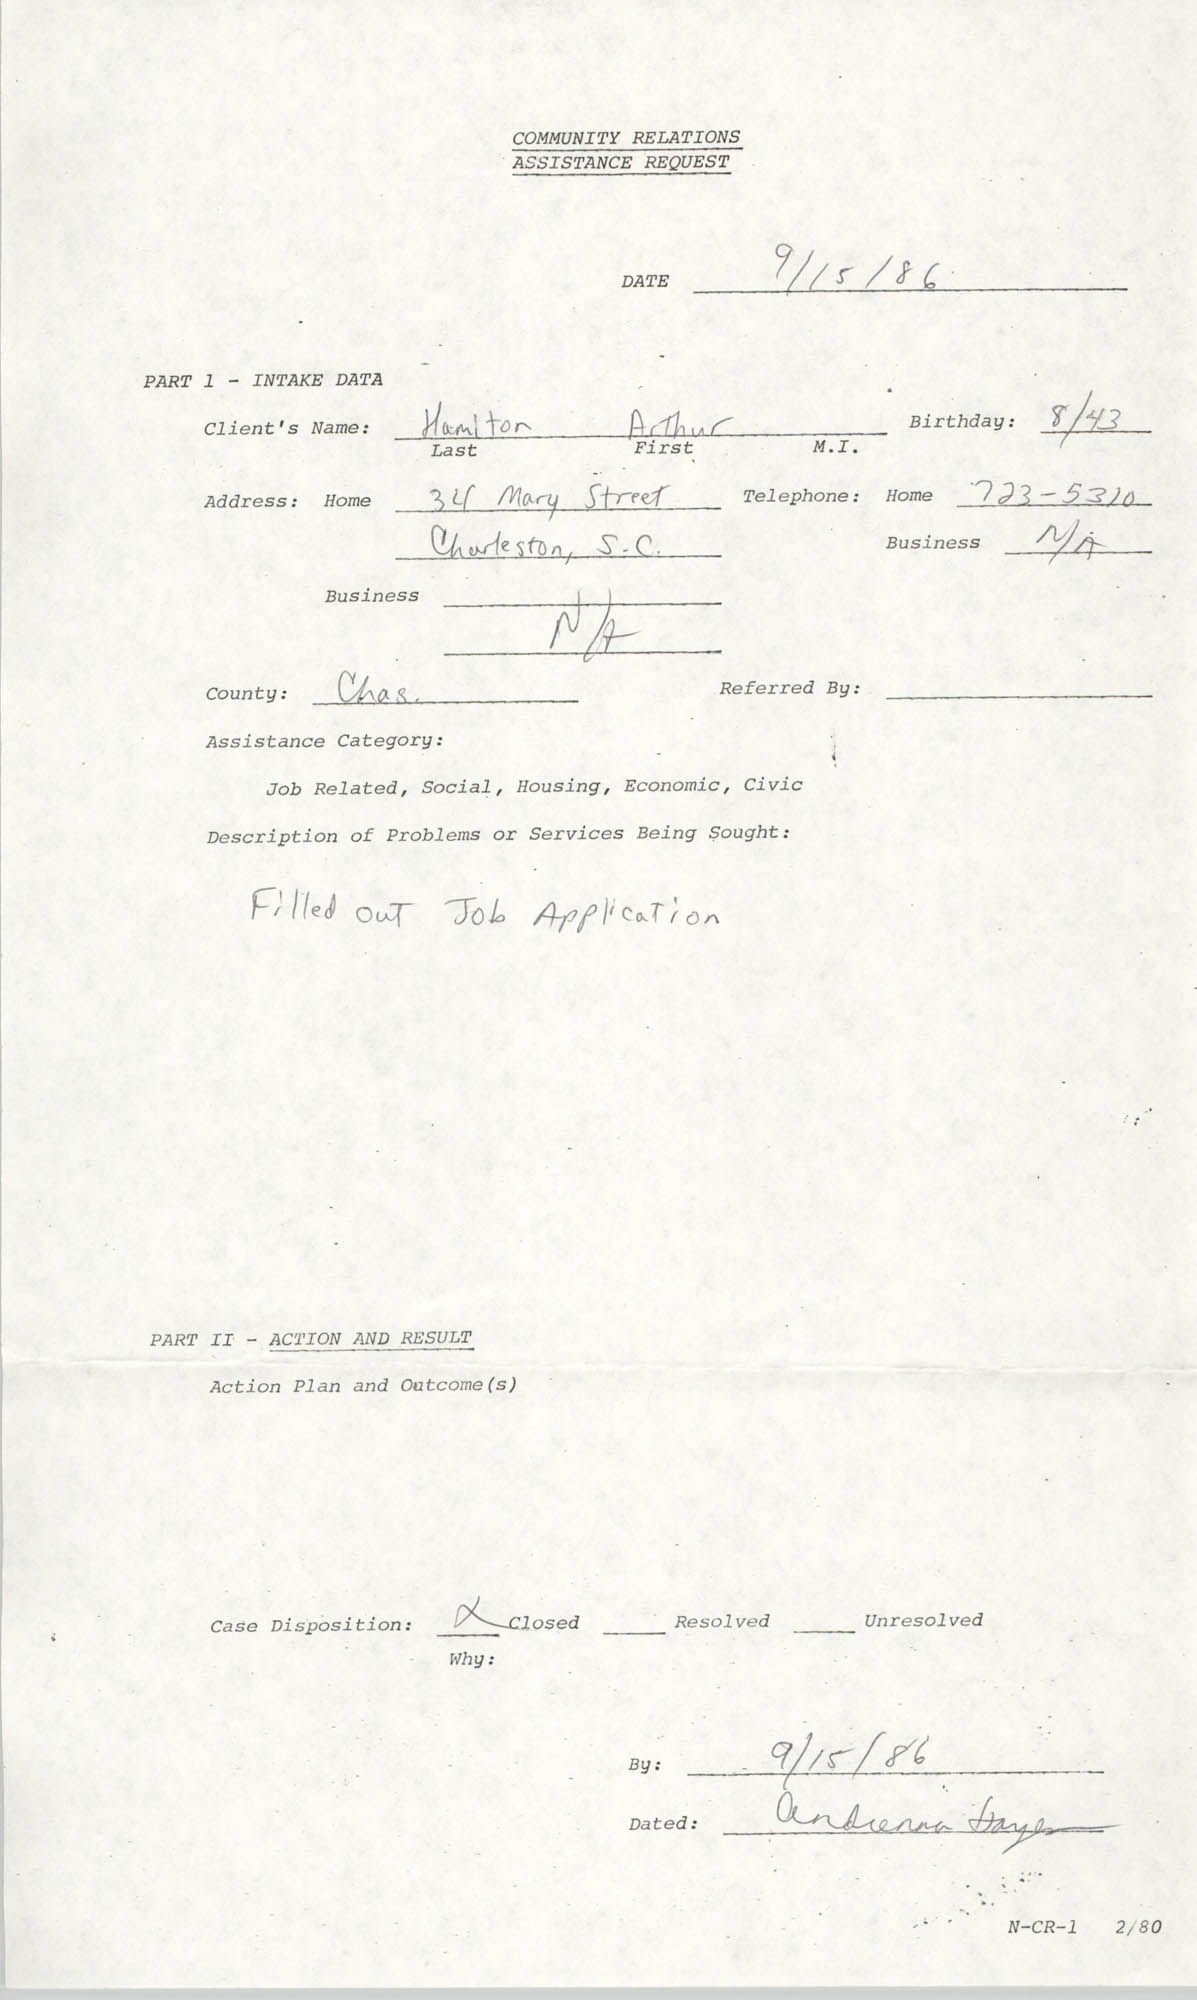 Community Relations Assistance Request, September 15, 1986